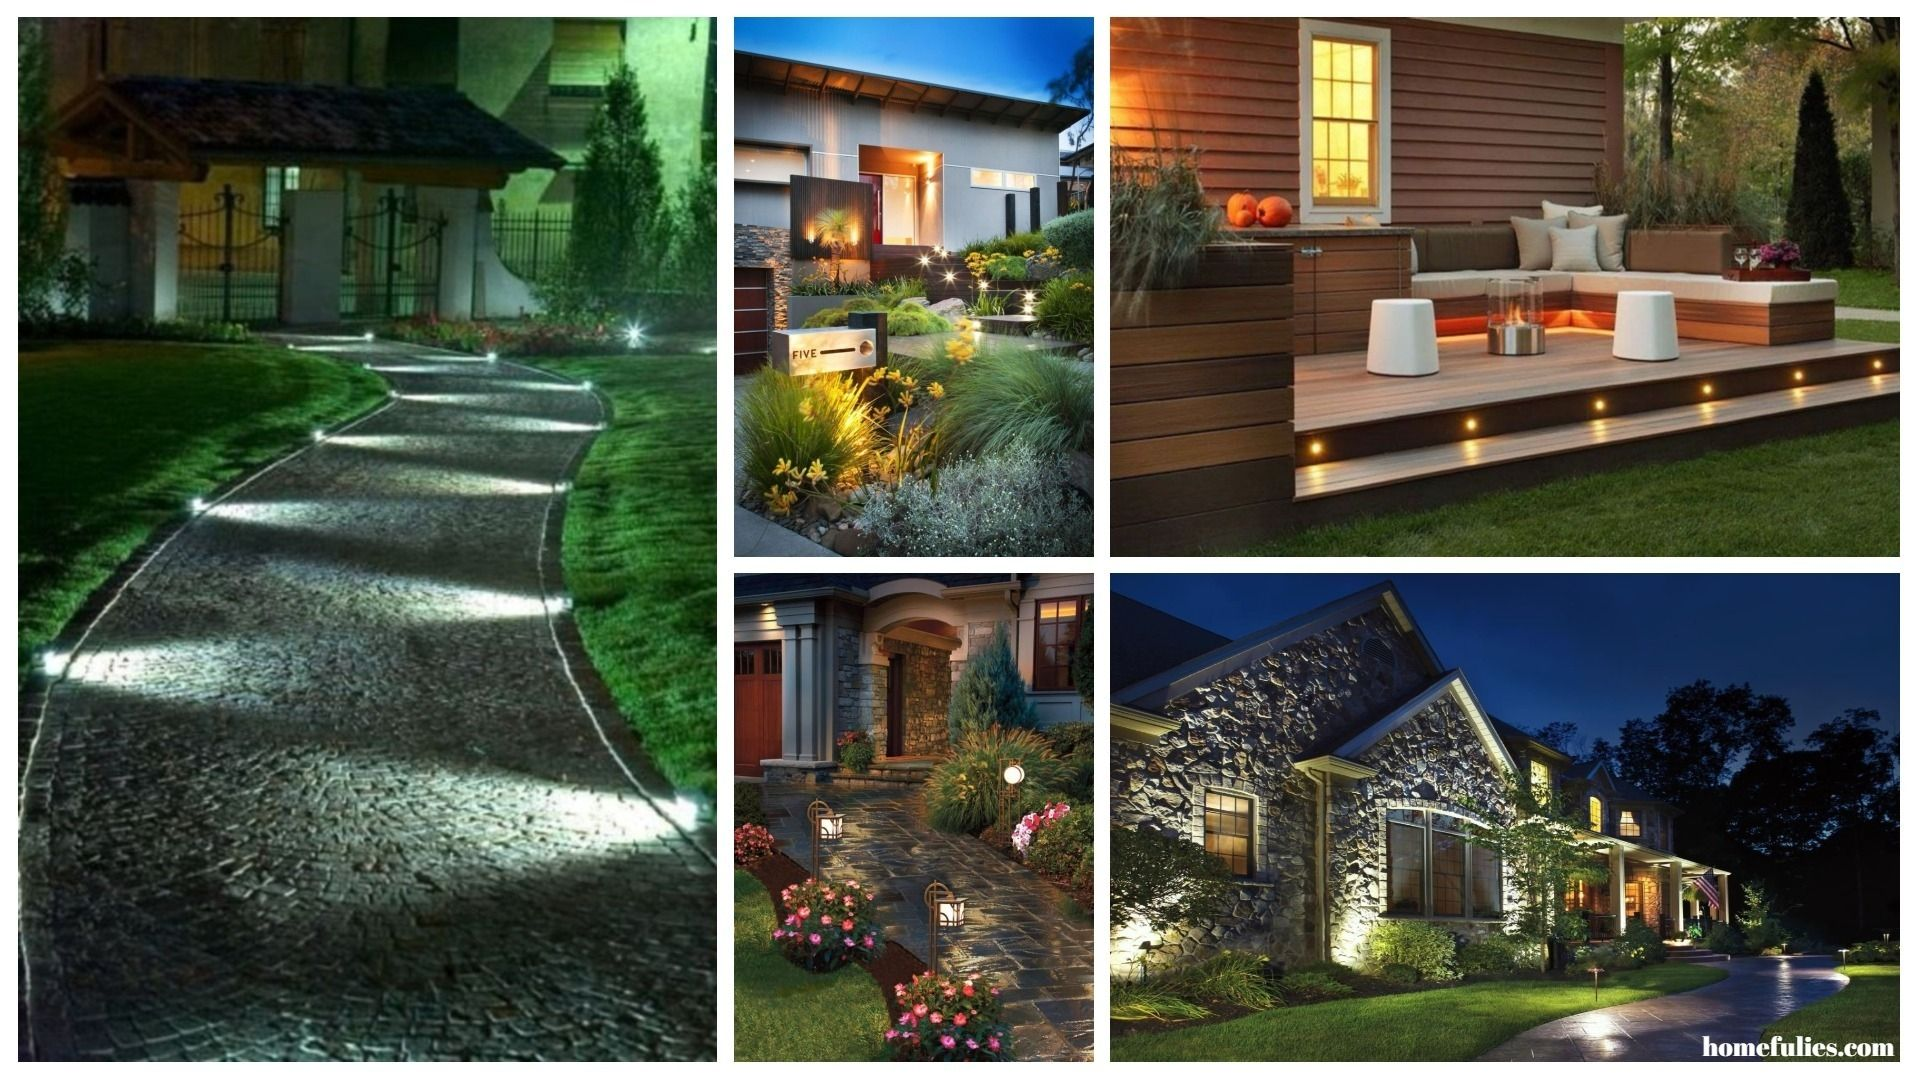 Gorgeous 38 Landscape Lighting Ideas For Frontyard Design Httphomefuliescom